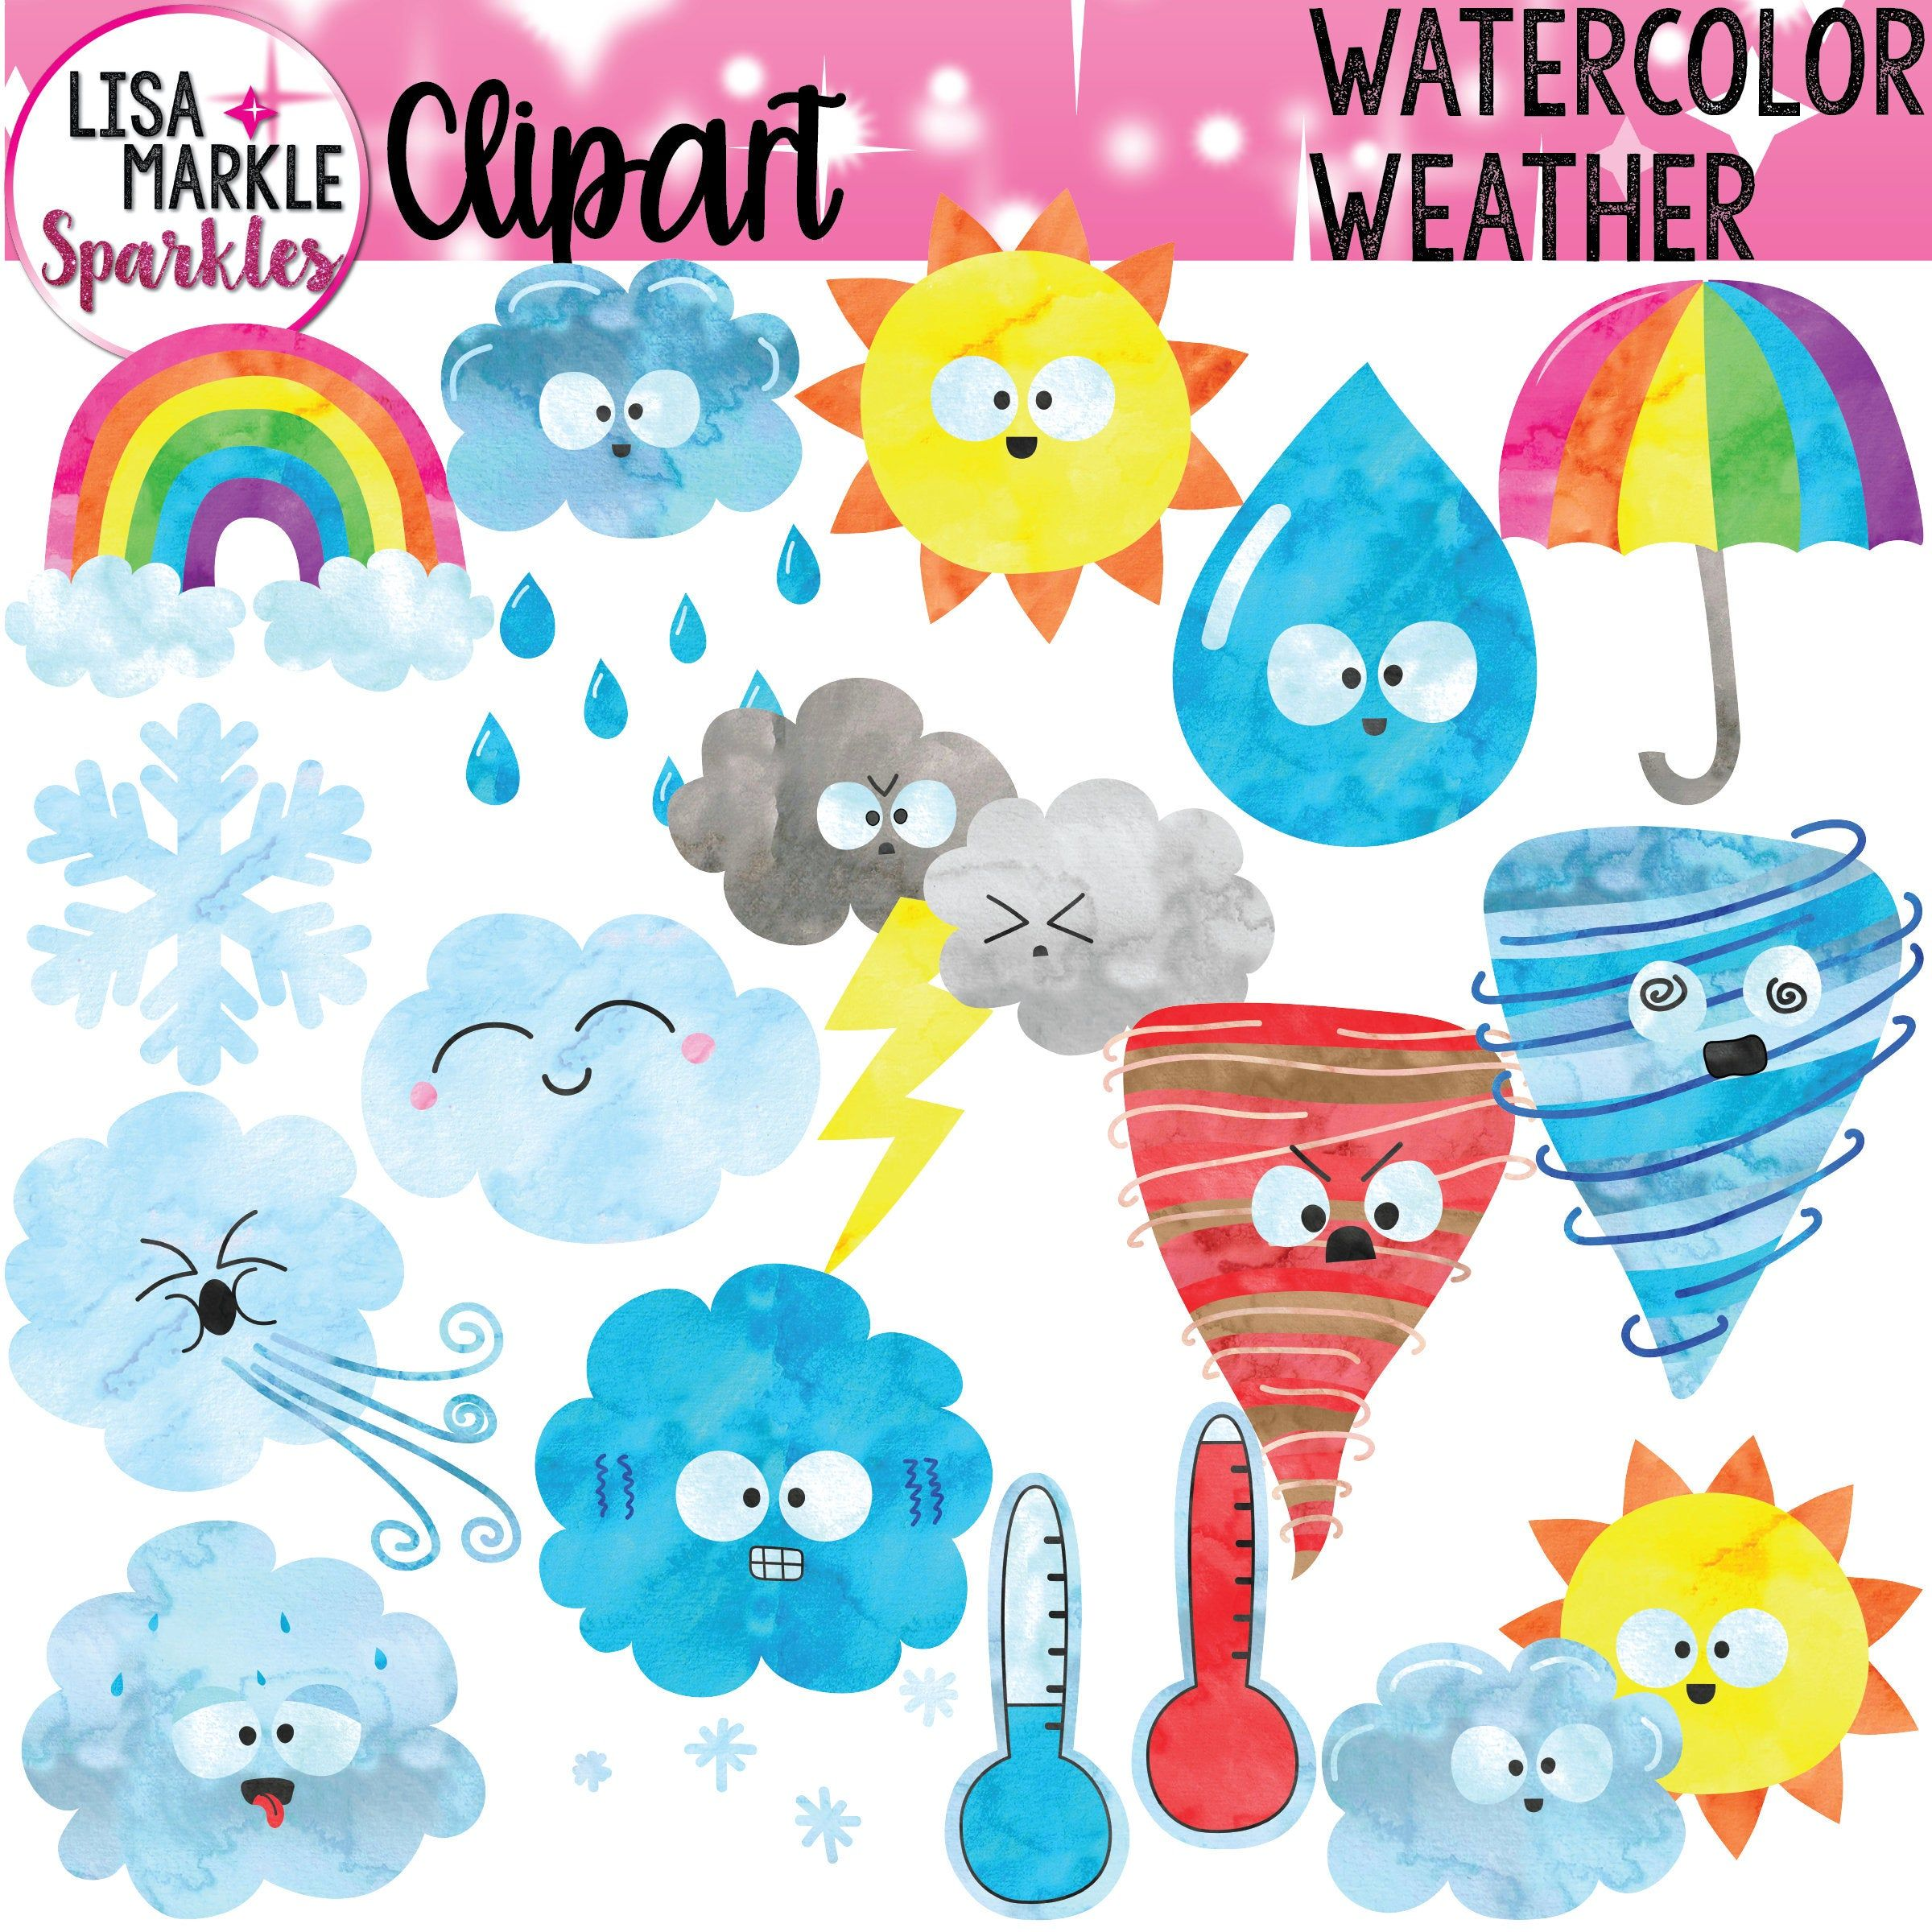 Weather Clipart Watercolor Weather Clipart Etsy Weather Clipart Clip Art Etsy Artwork